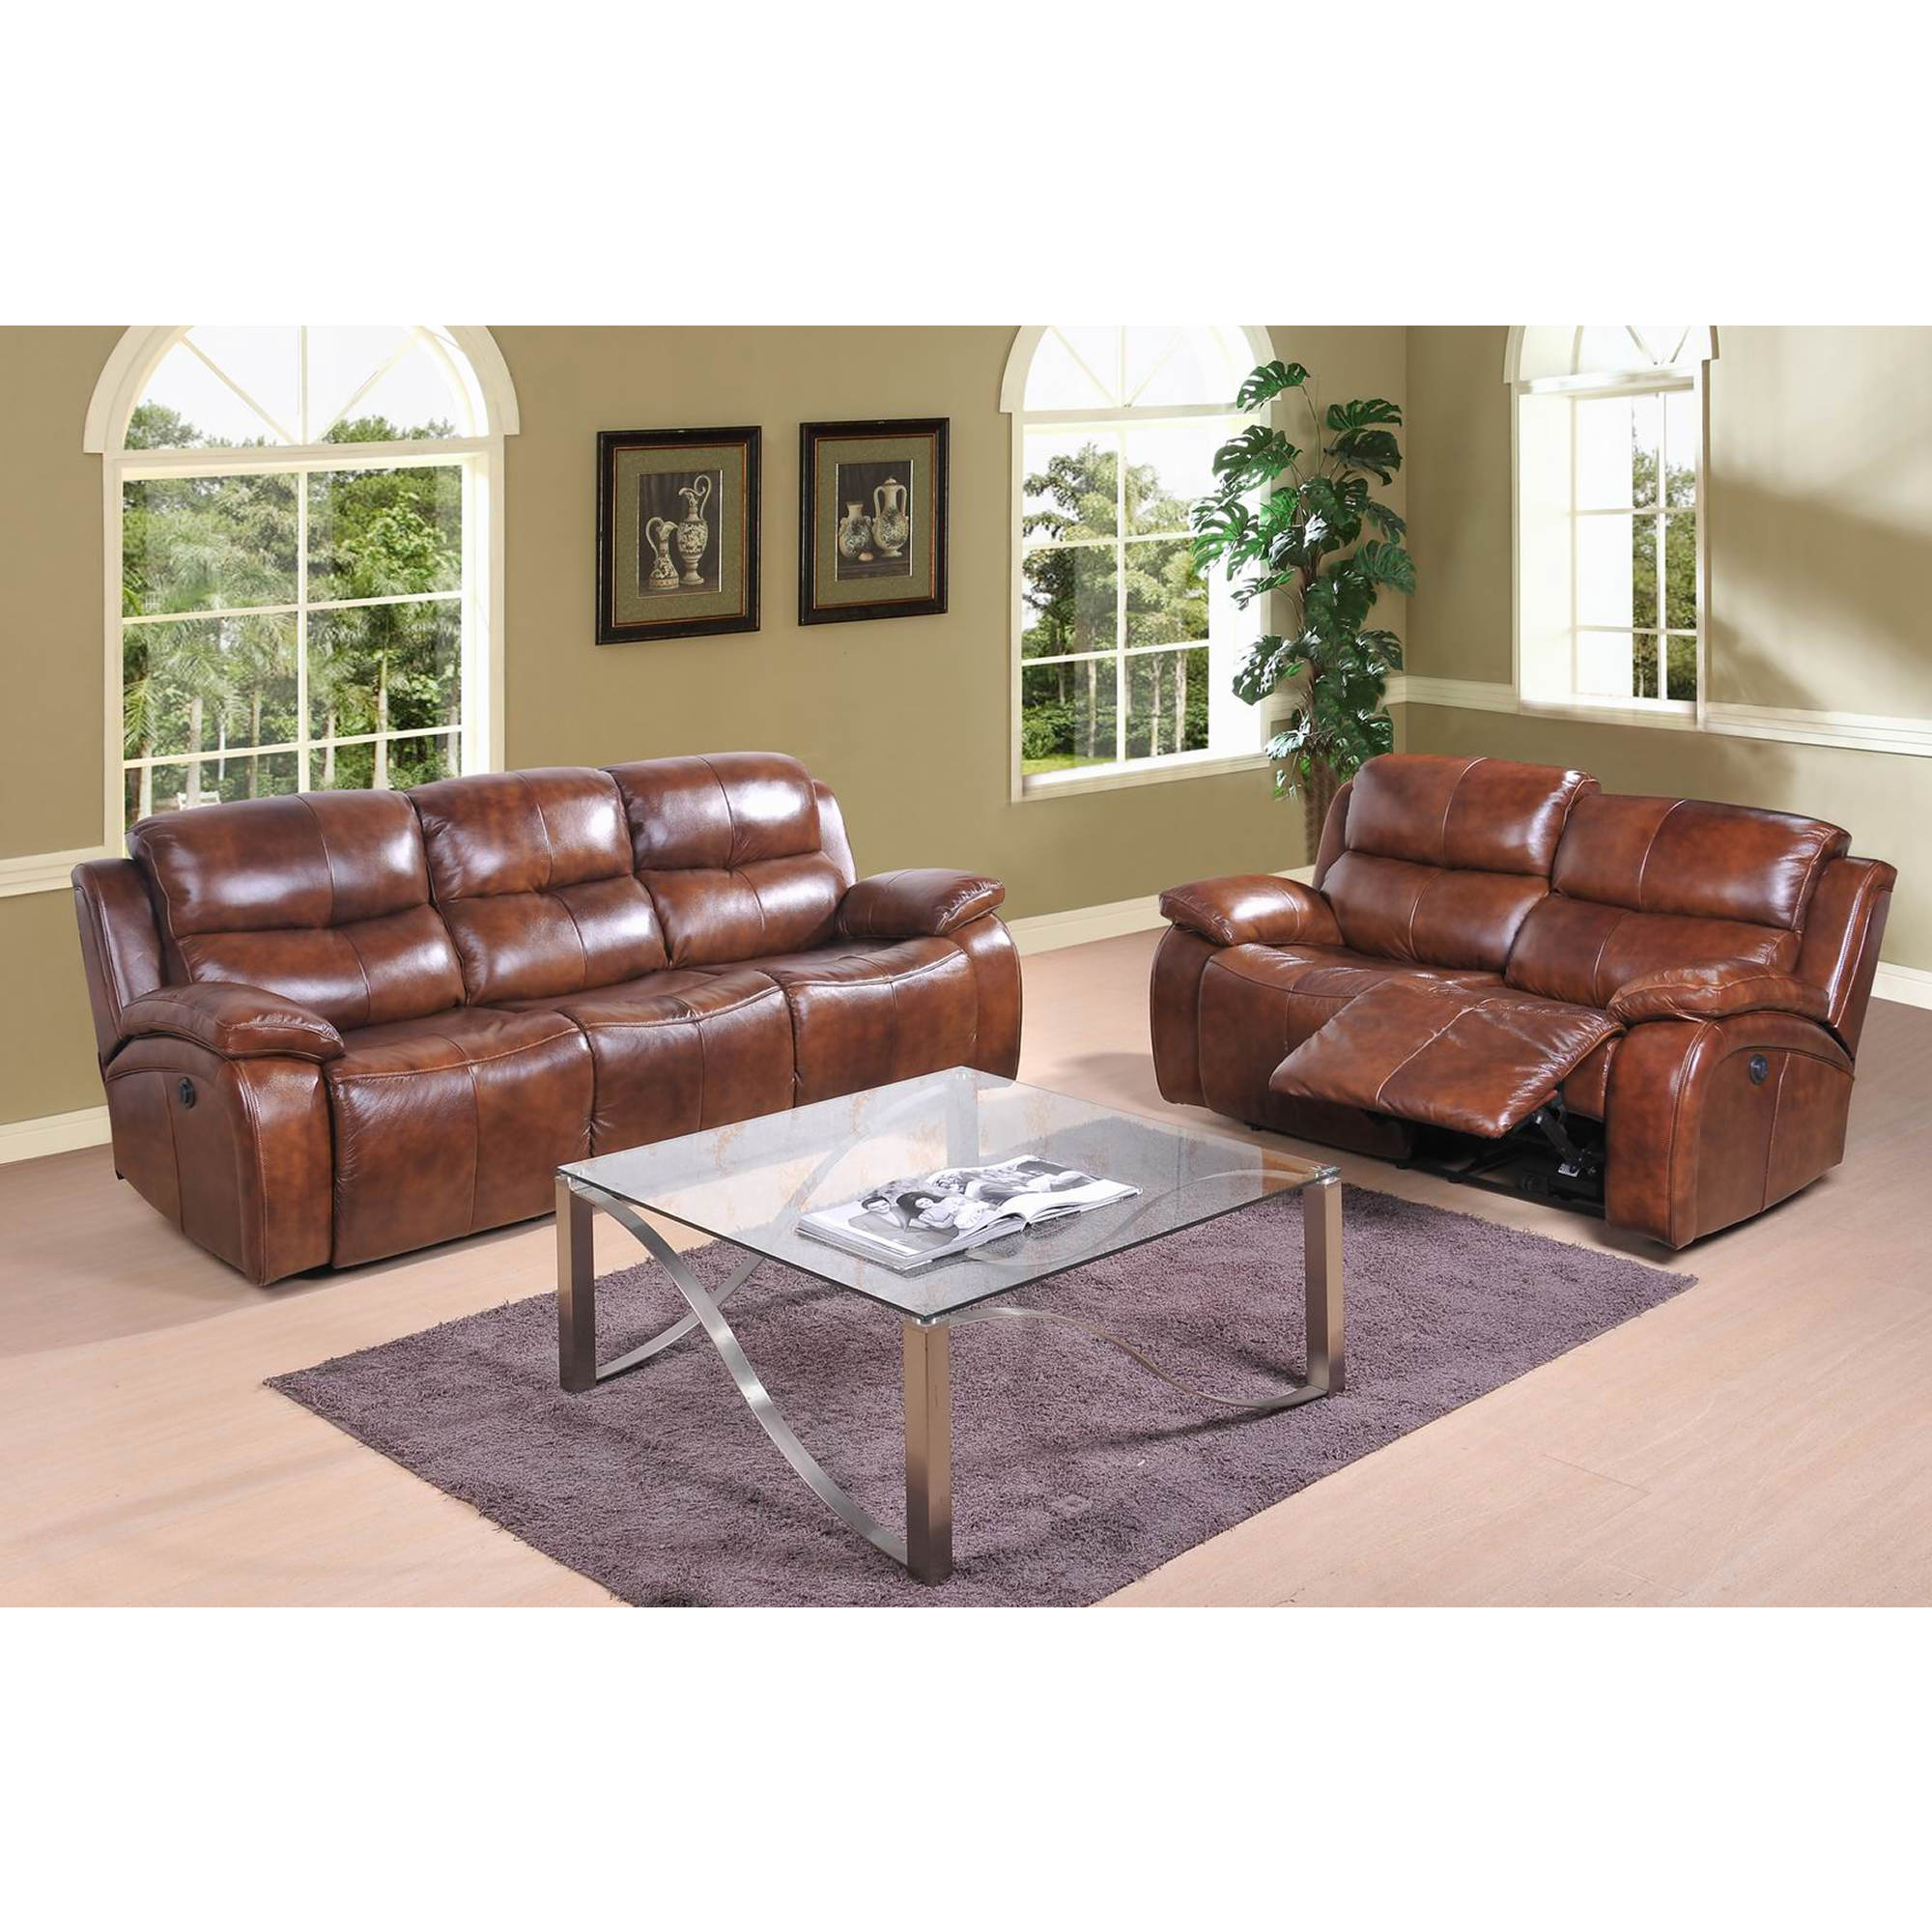 Abbyson Living Wesley 3-Pc. Top-Grain Leather Living Room